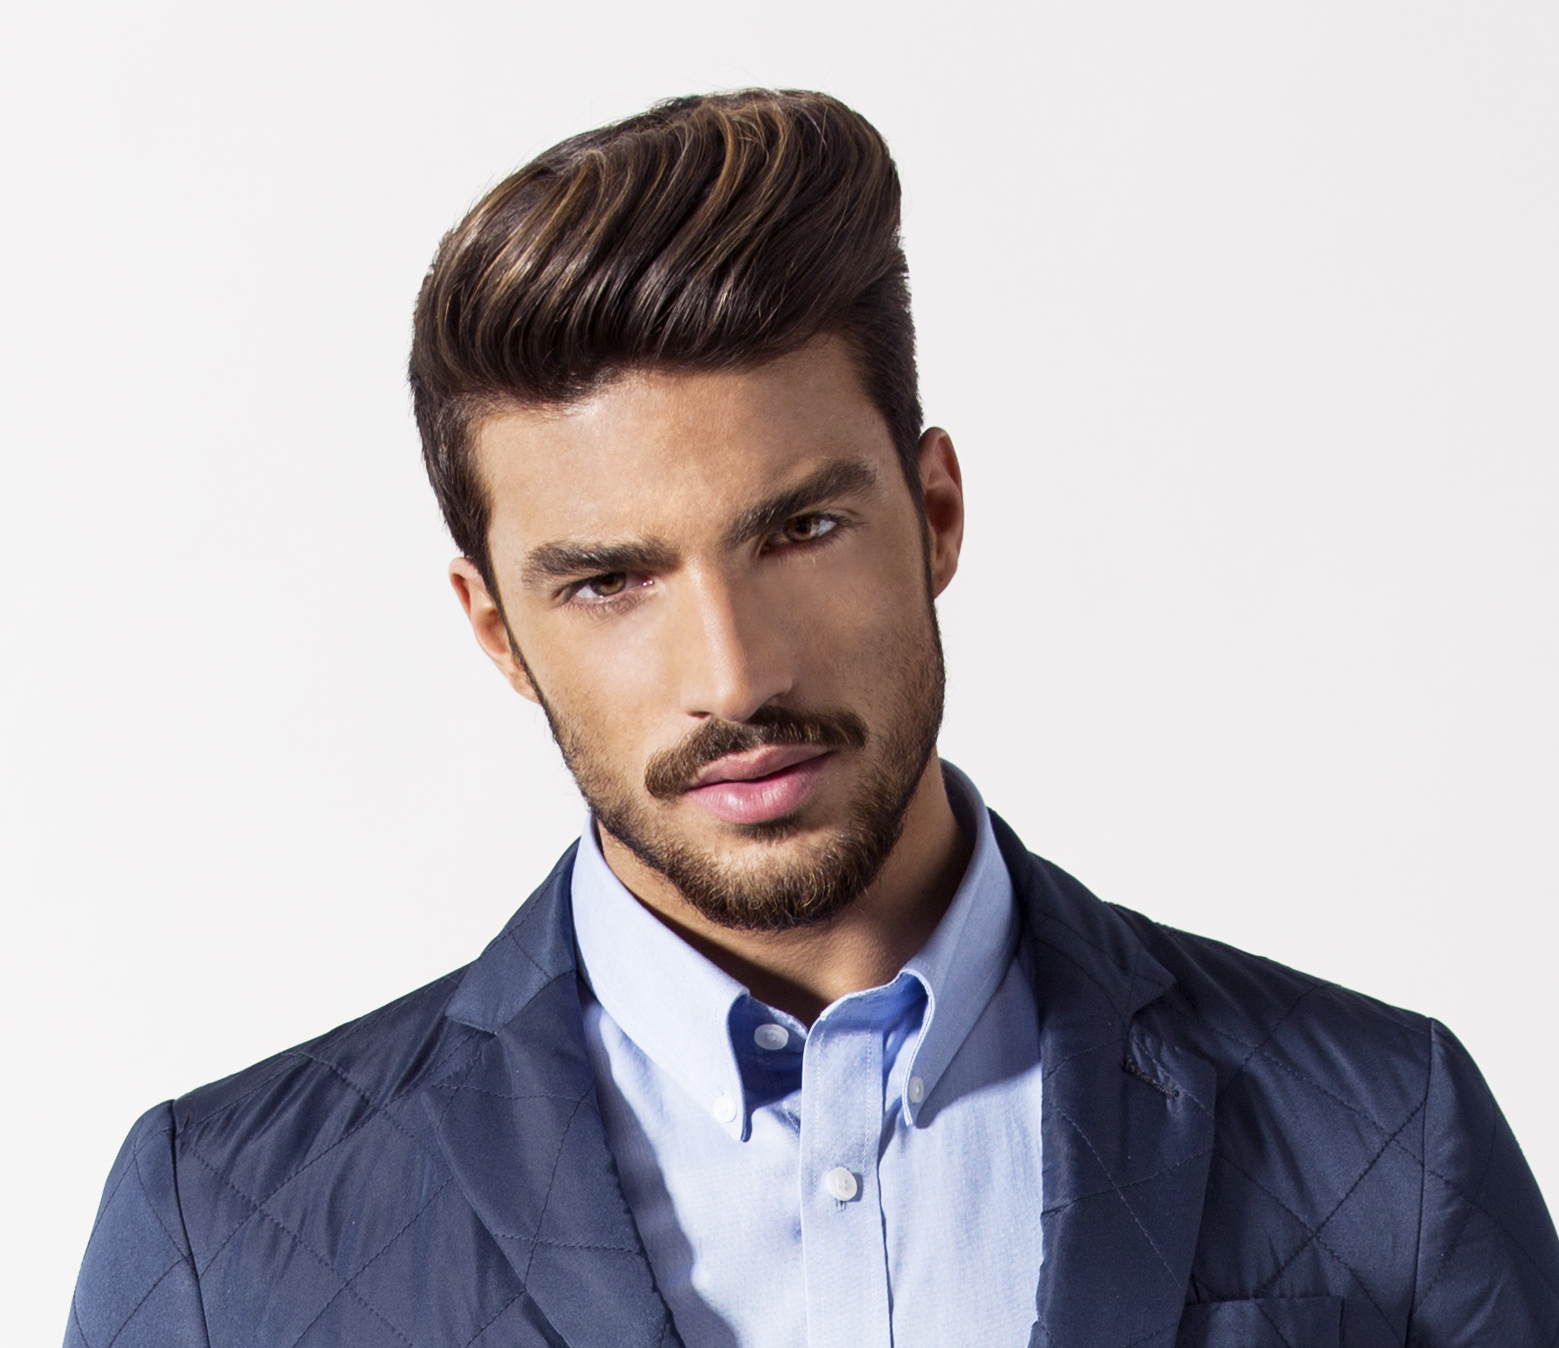 Lip n glow for mariano di vaio